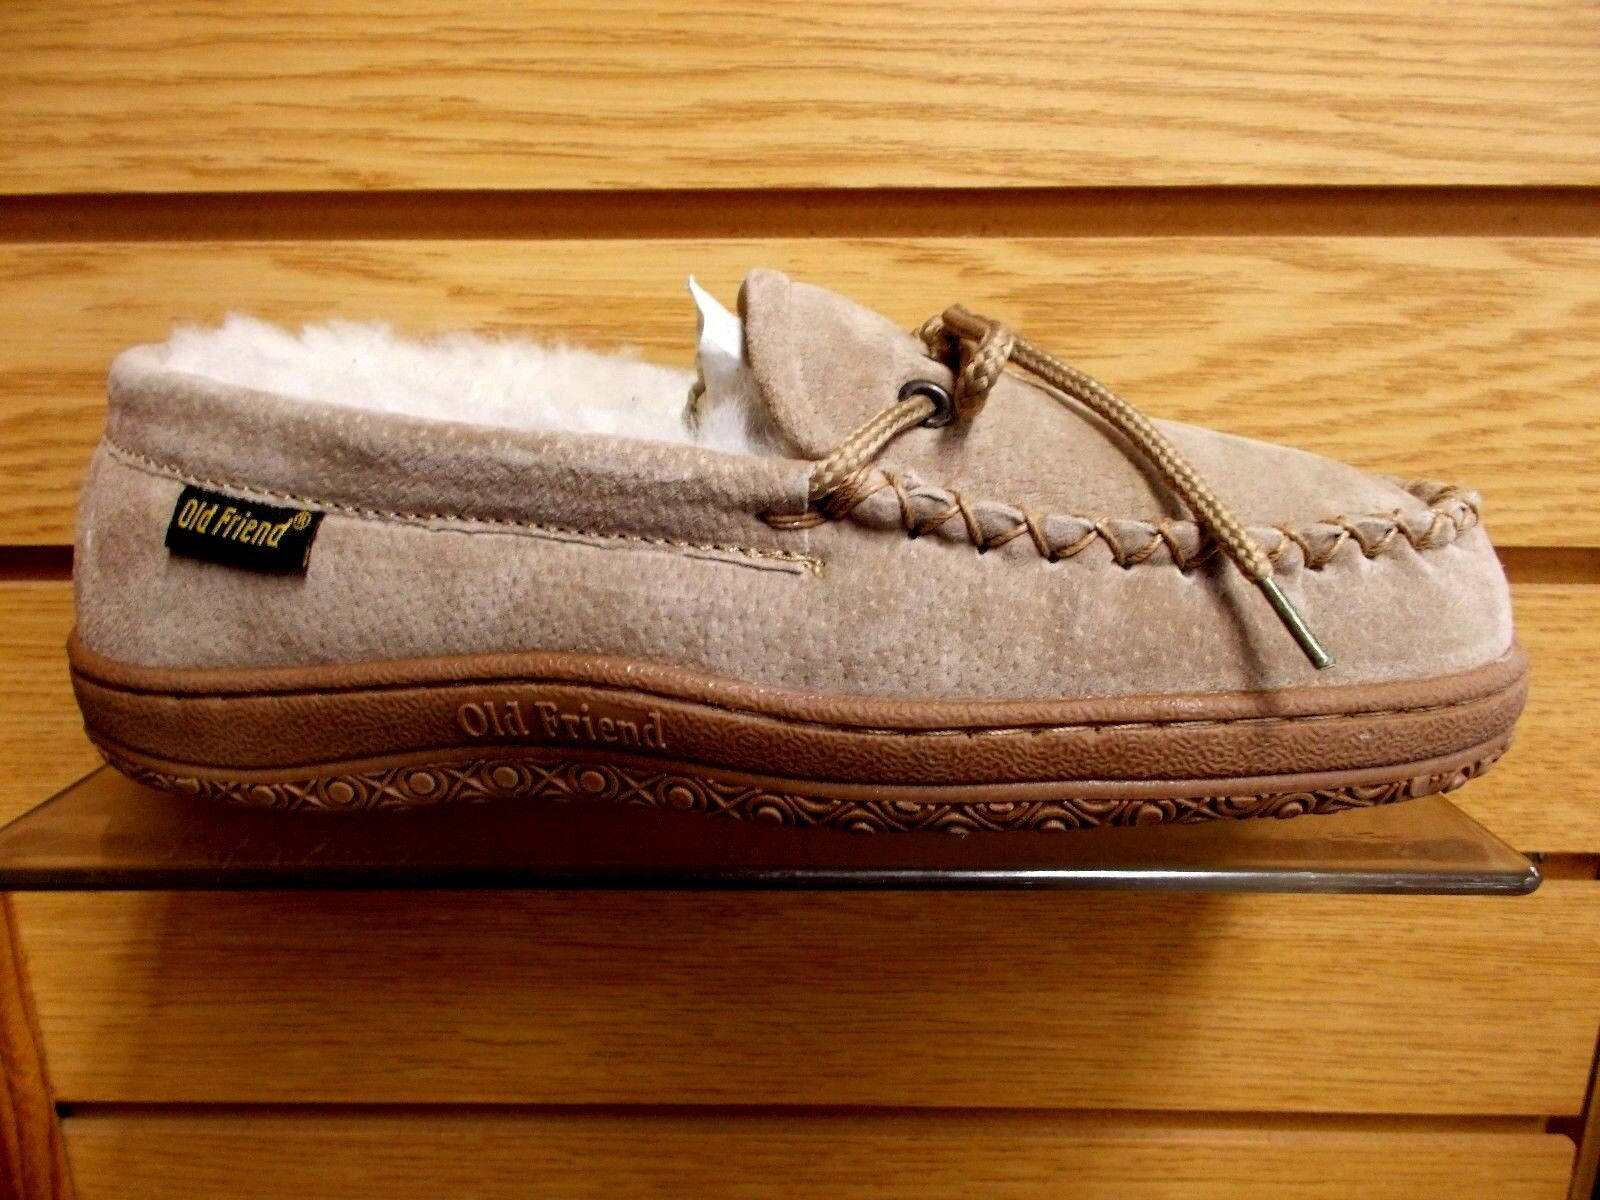 OLD FRIEND WOMEN'S SHEEPSKIN LINED SLIPPER MOCCASIN WIDE SIZES 6 TO 11 NEW